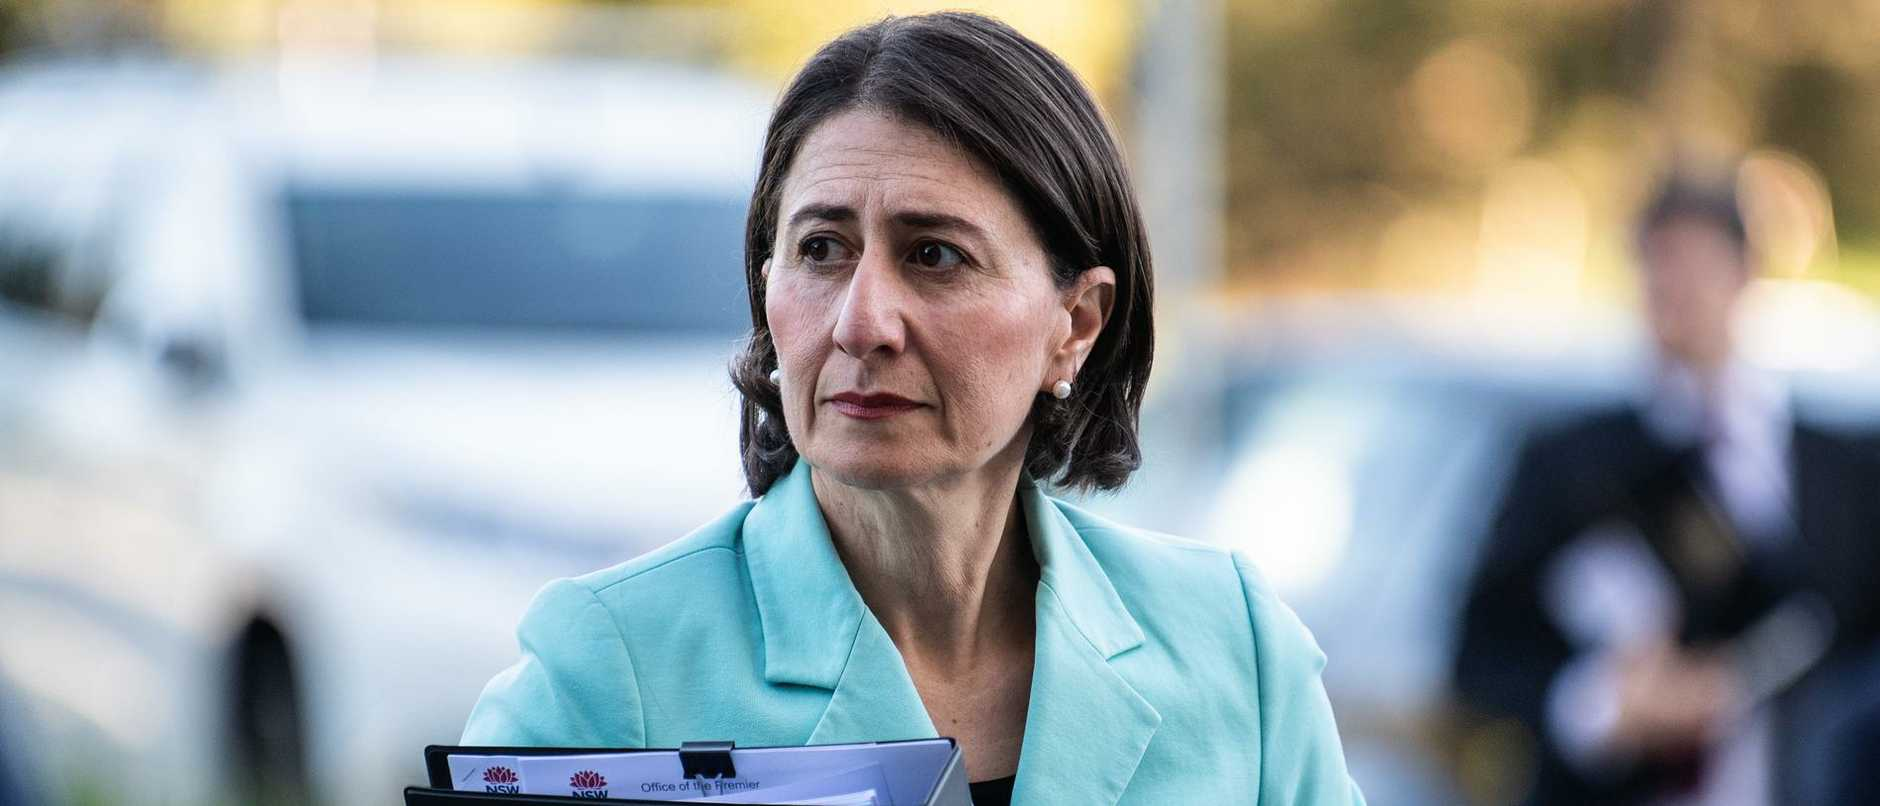 Premier Gladys Berejiklian has set up a war cabinet to tackle the impact of coronavirus across NSW. The first meeting, to be held today.